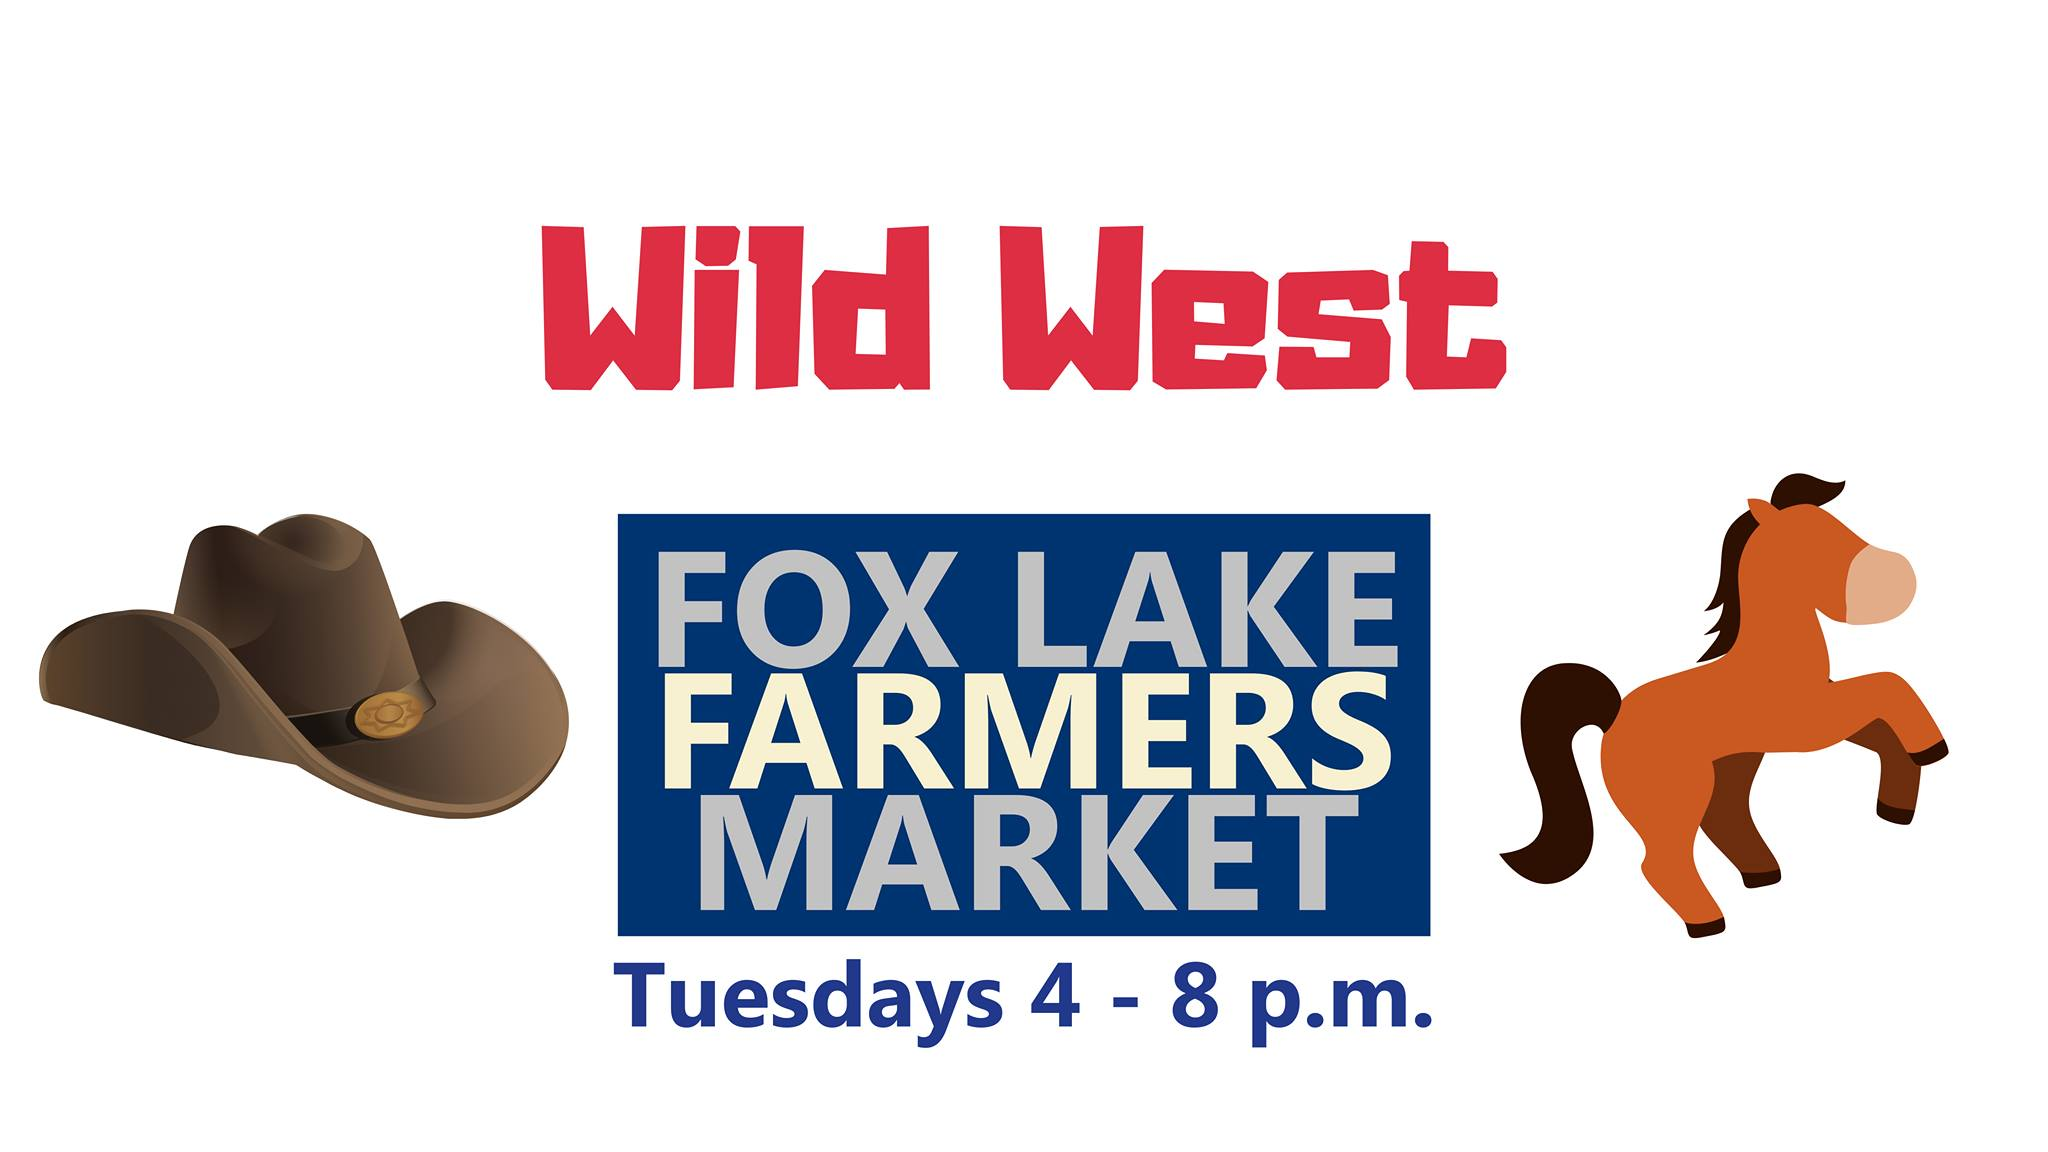 Wild West Day at the Fox Lake Farmers Market